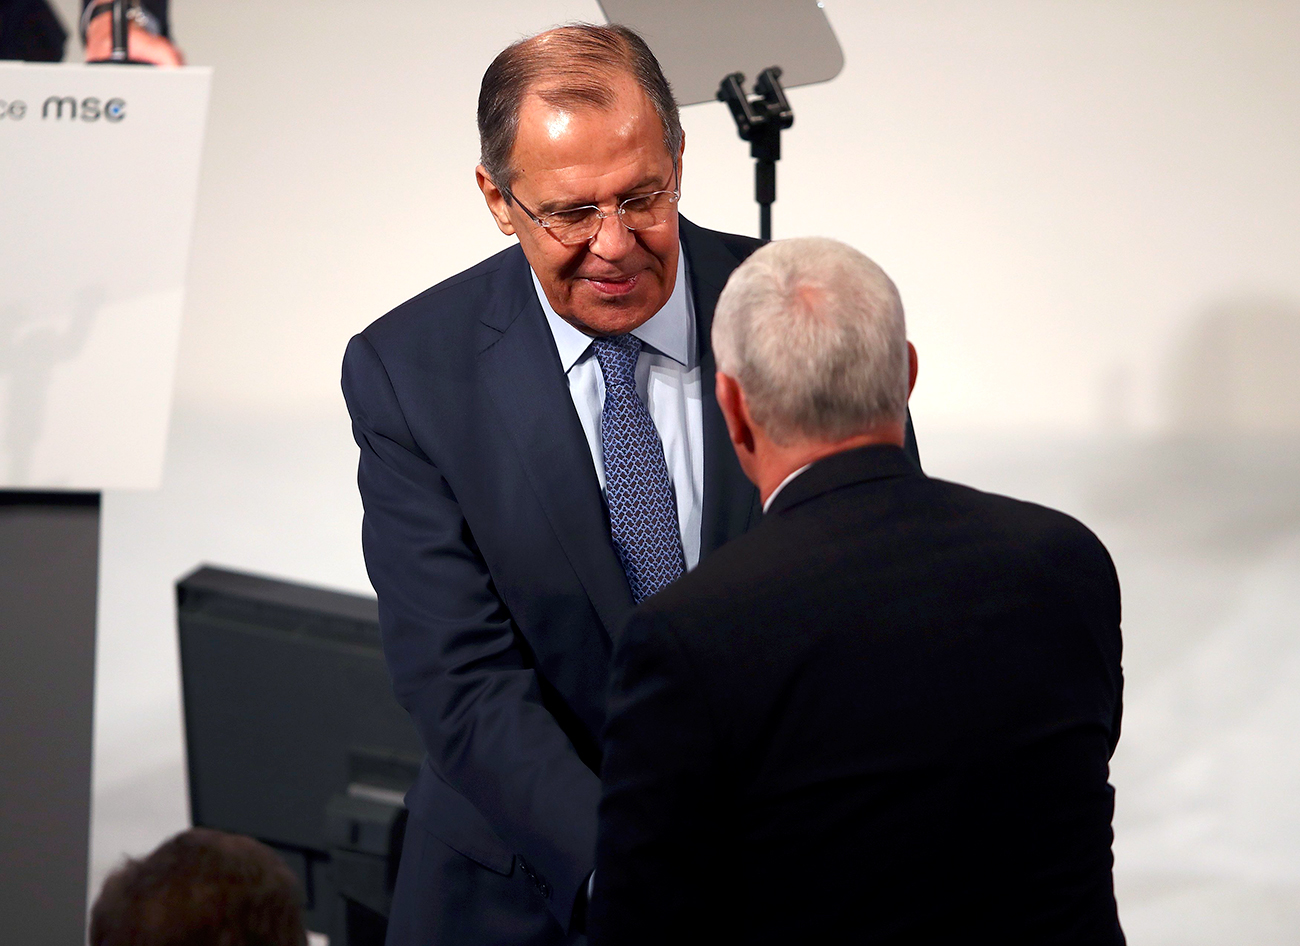 Russia's Foreign Minister Sergey Lavrov shakes hands with U.S. Vice President Mike Pence during the 53rd Munich Security Conference, Feb. 18, 2017.